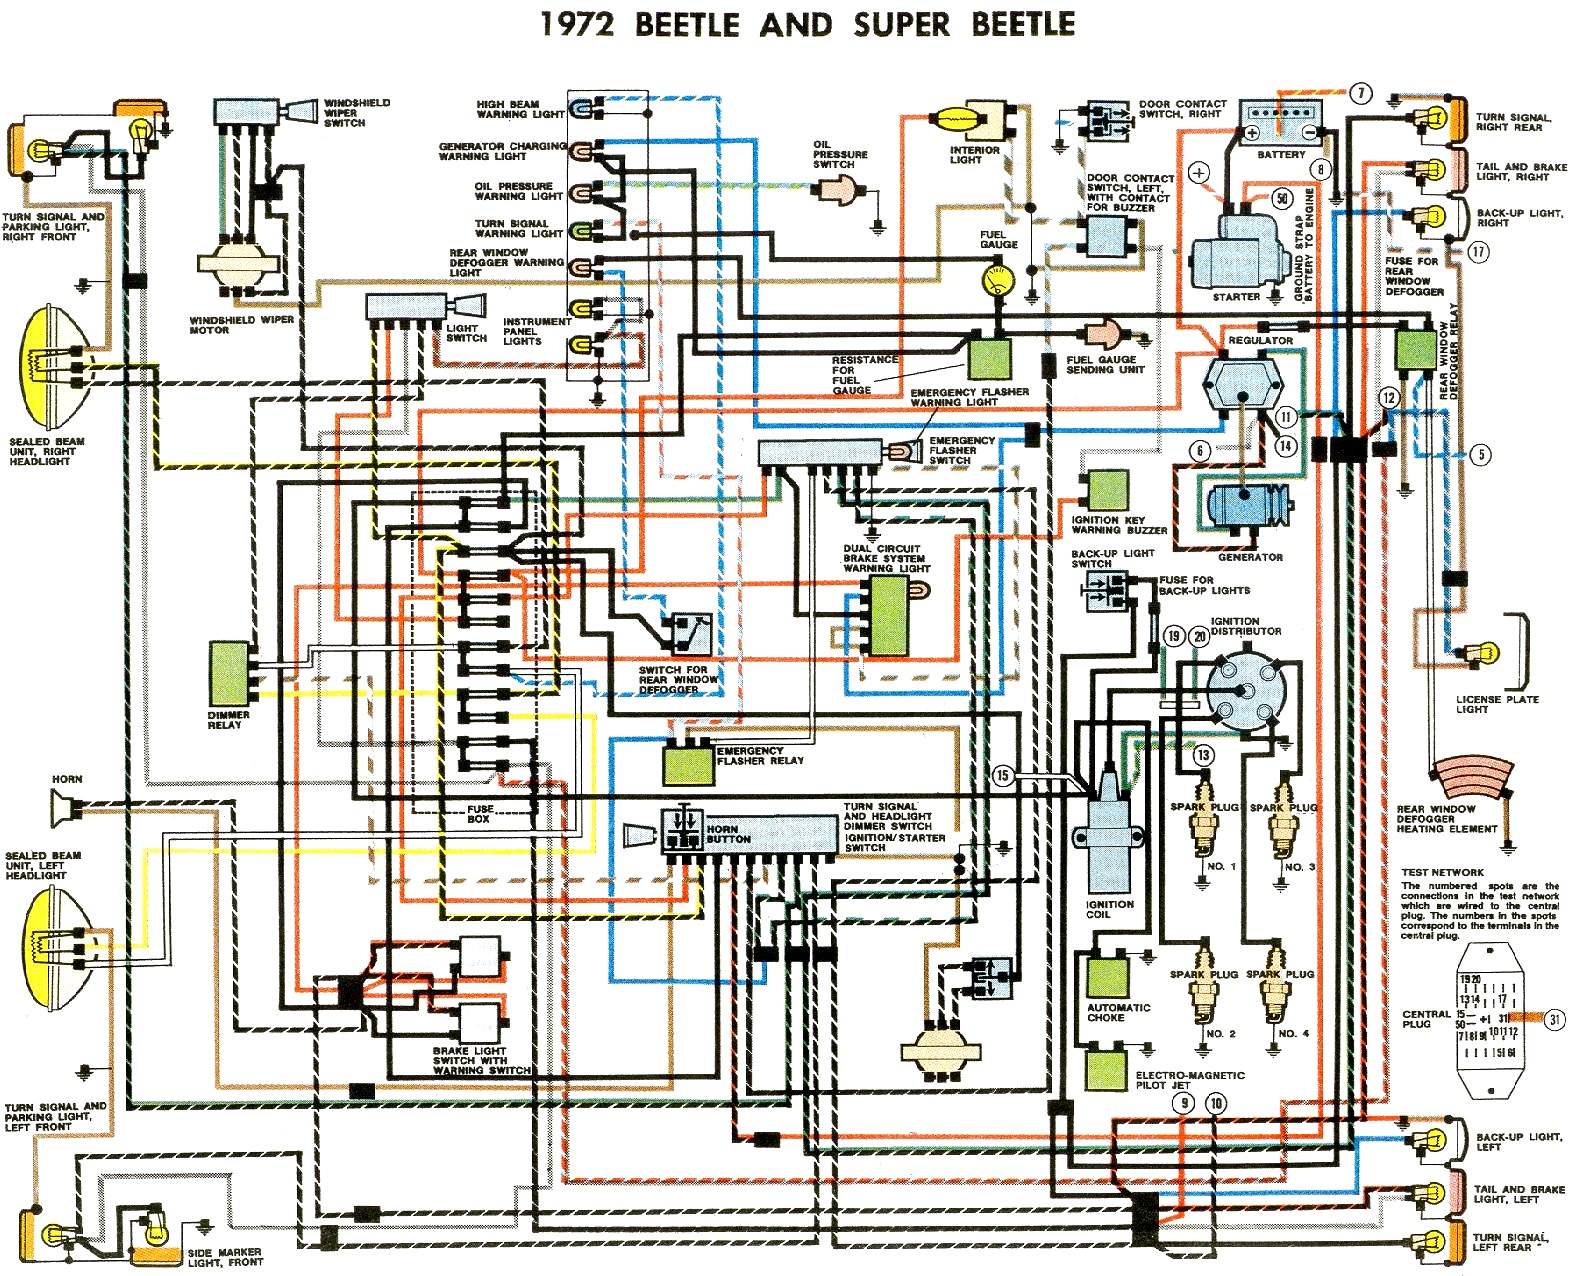 98 Ford Ranger Fuse Box Diagram Simple Guide About Wiring 1972 Beetle Thegoldenbug Com Solucionado Reparacion De Bomba Combustible 1998